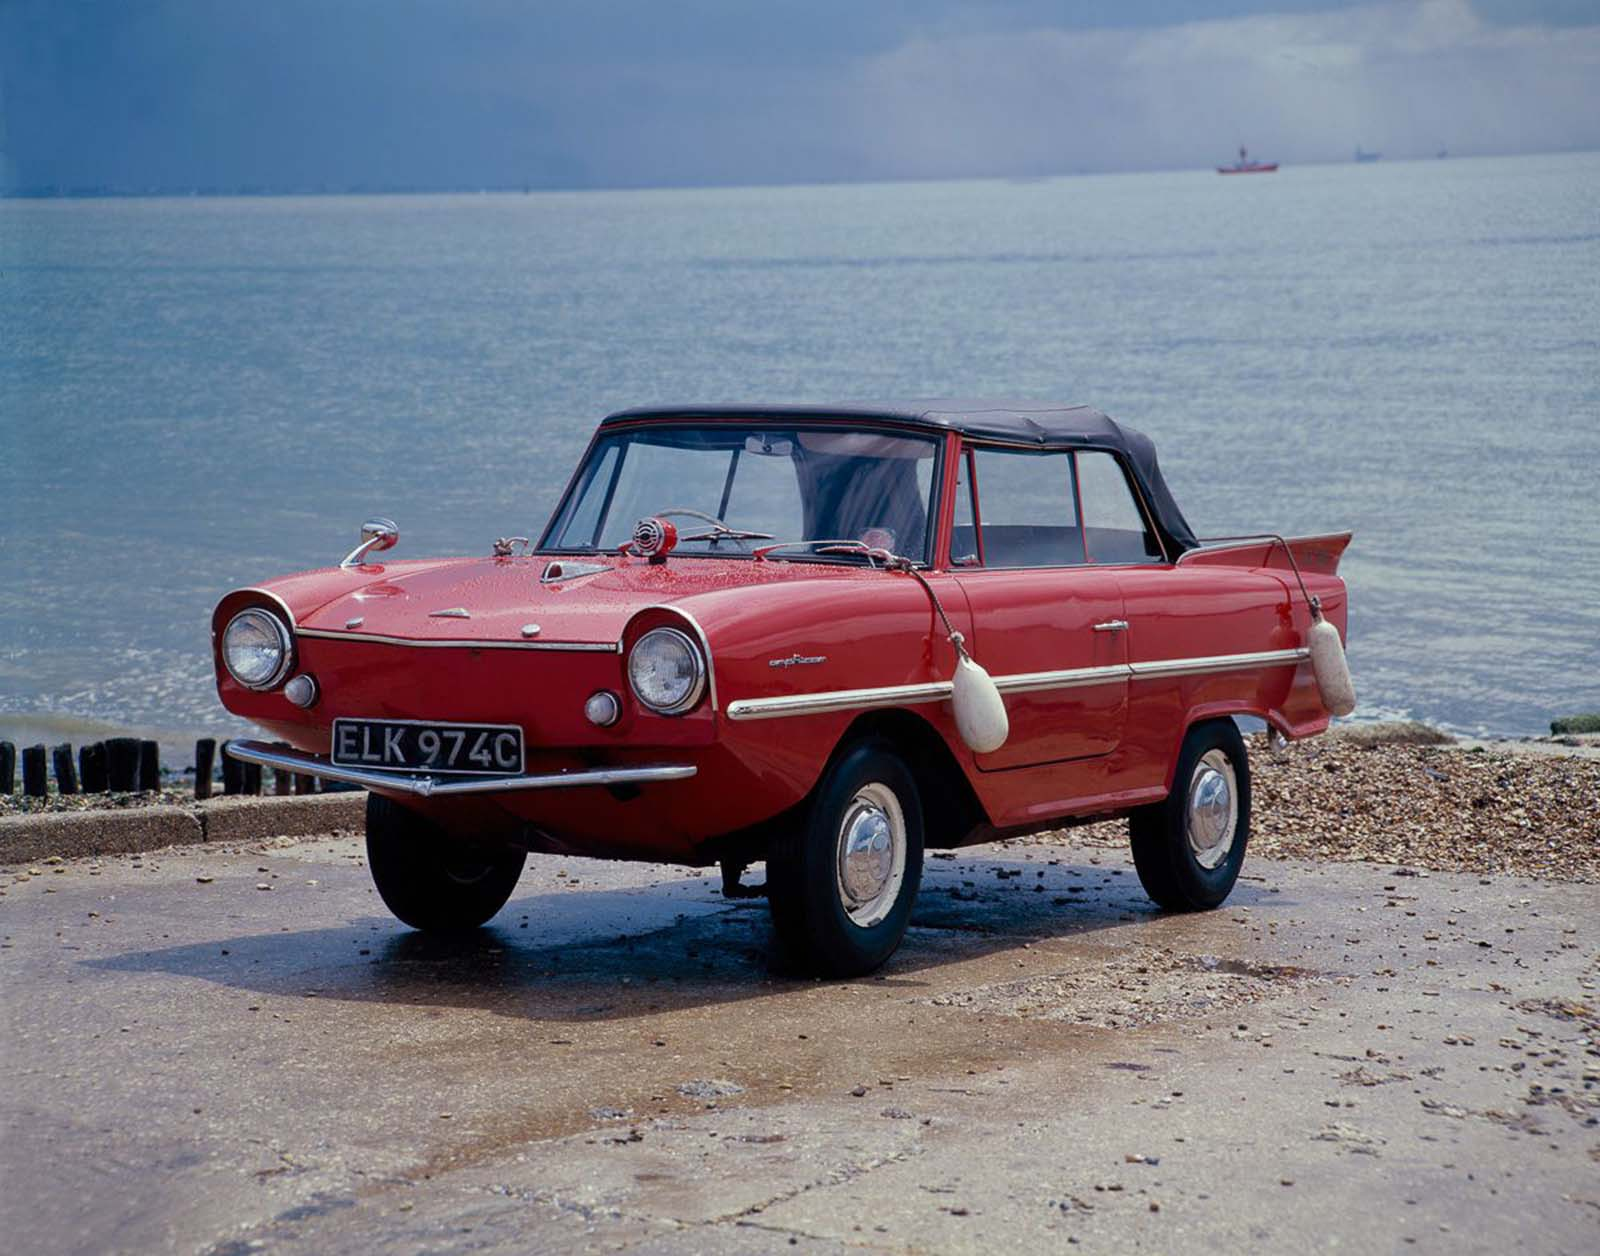 Most Amphicars were sold in the United States. Cars were sold in the United Kingdom from 1964. Total production was 3,878 vehicles. 99 right-hand drives were converted from left-hand drives. Some were used in the Berlin police department and others were fitted for rescue operations.